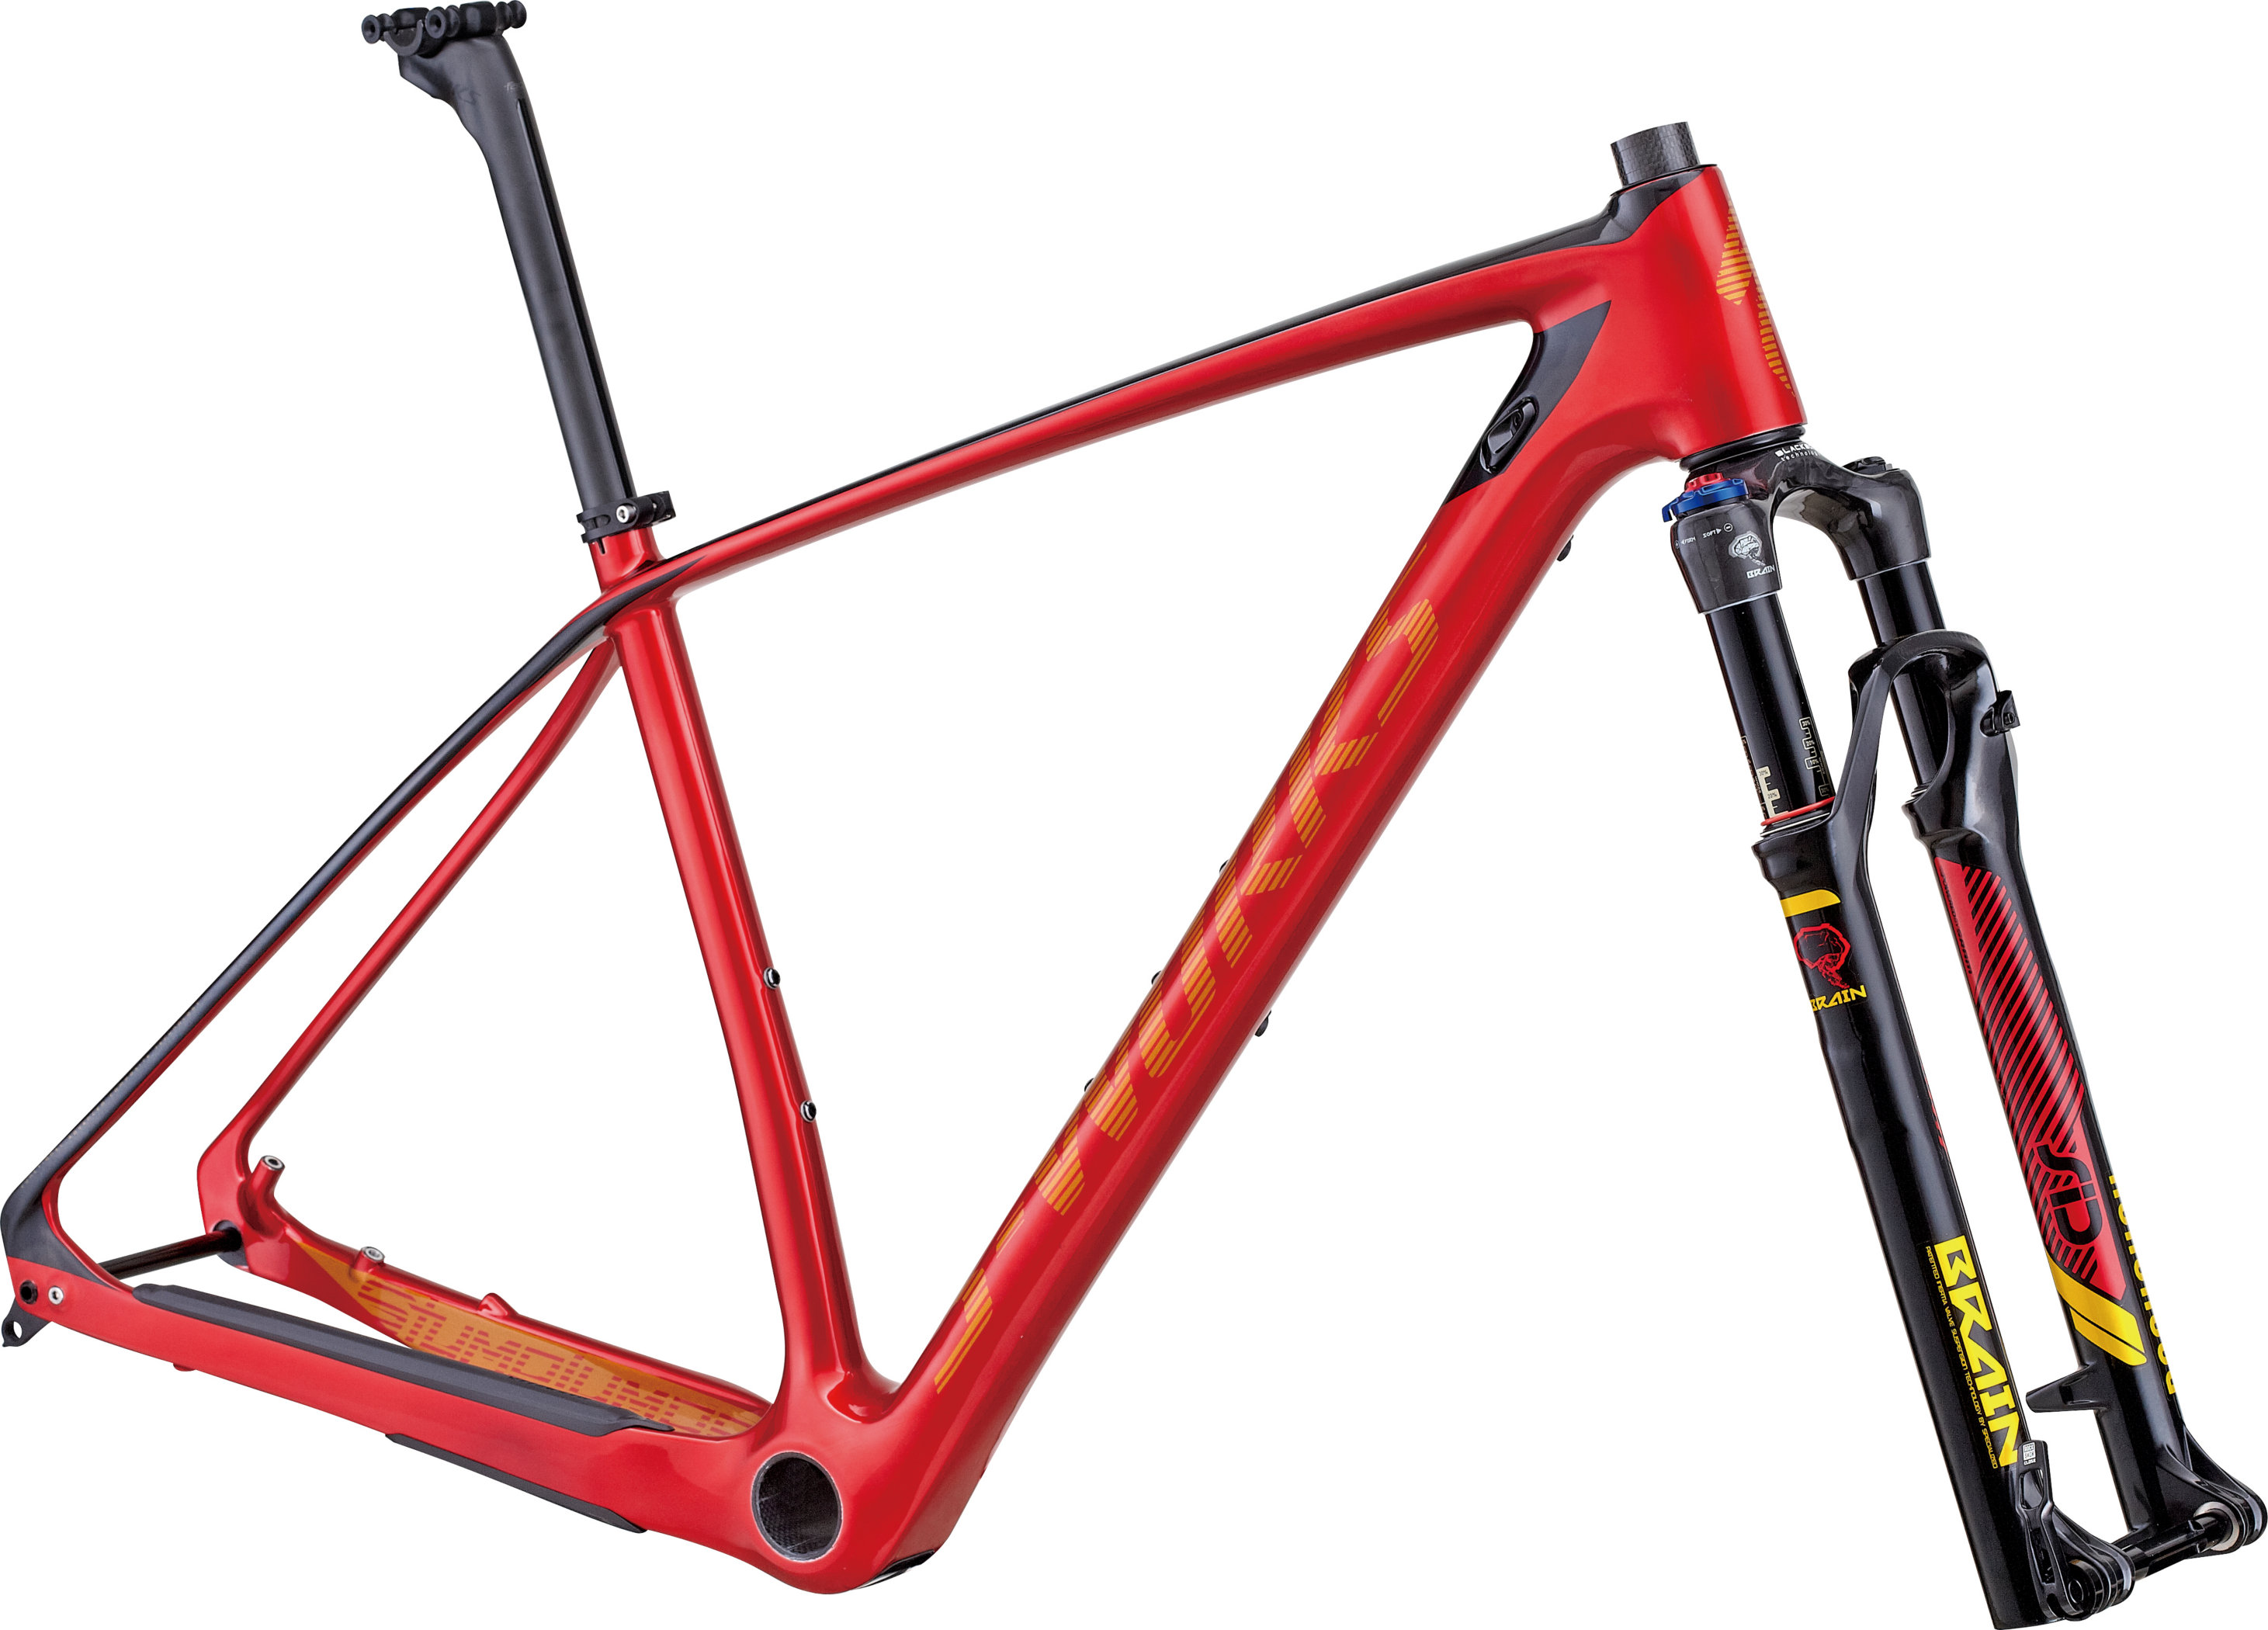 S-Works Stumpjumper HT Frameset | Specialized.com